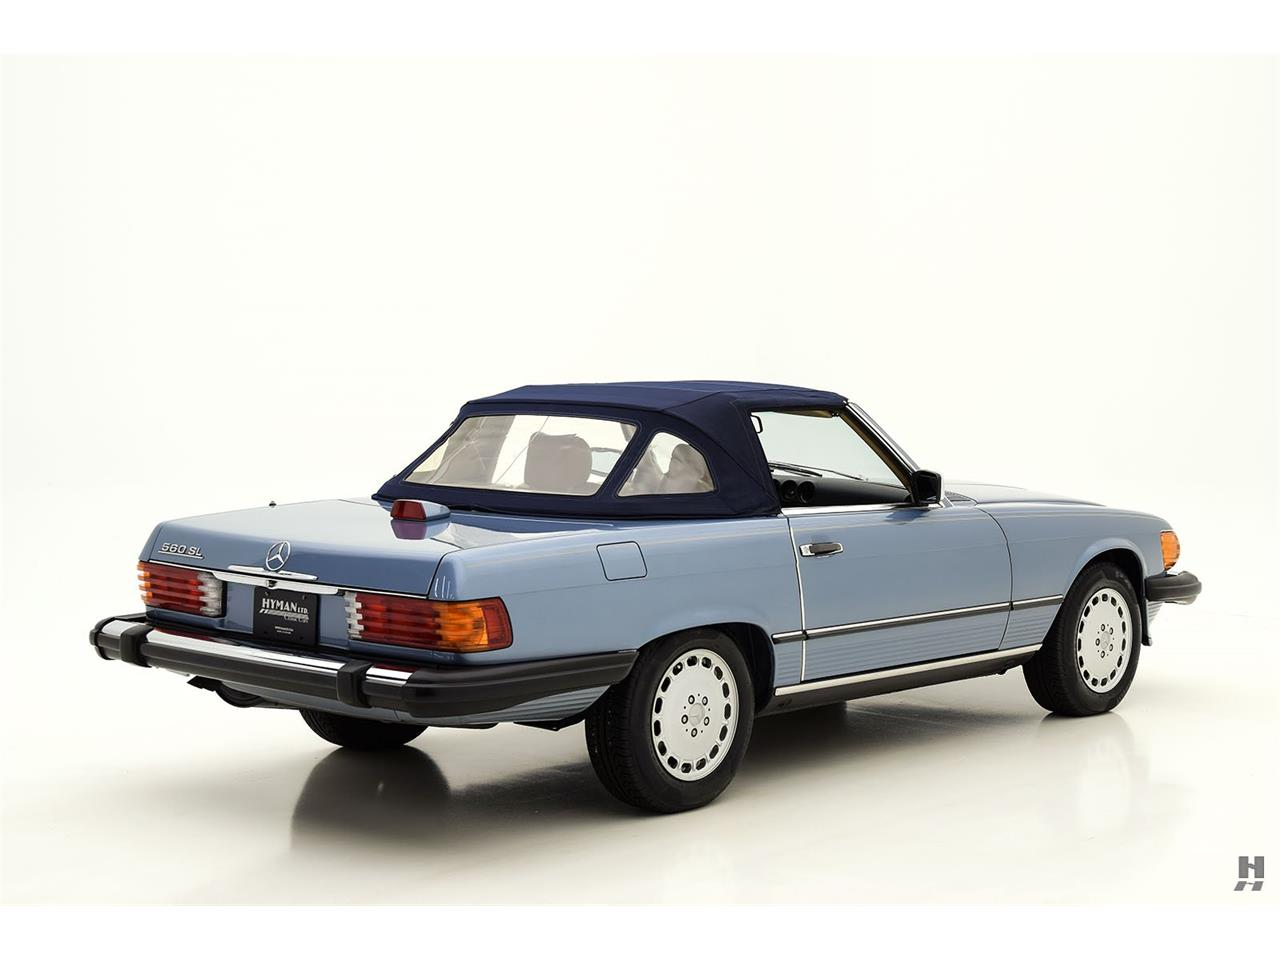 Large Picture of '87 Mercedes-Benz 560SL located in Saint Louis Missouri Offered by Hyman Ltd. Classic Cars - LENL